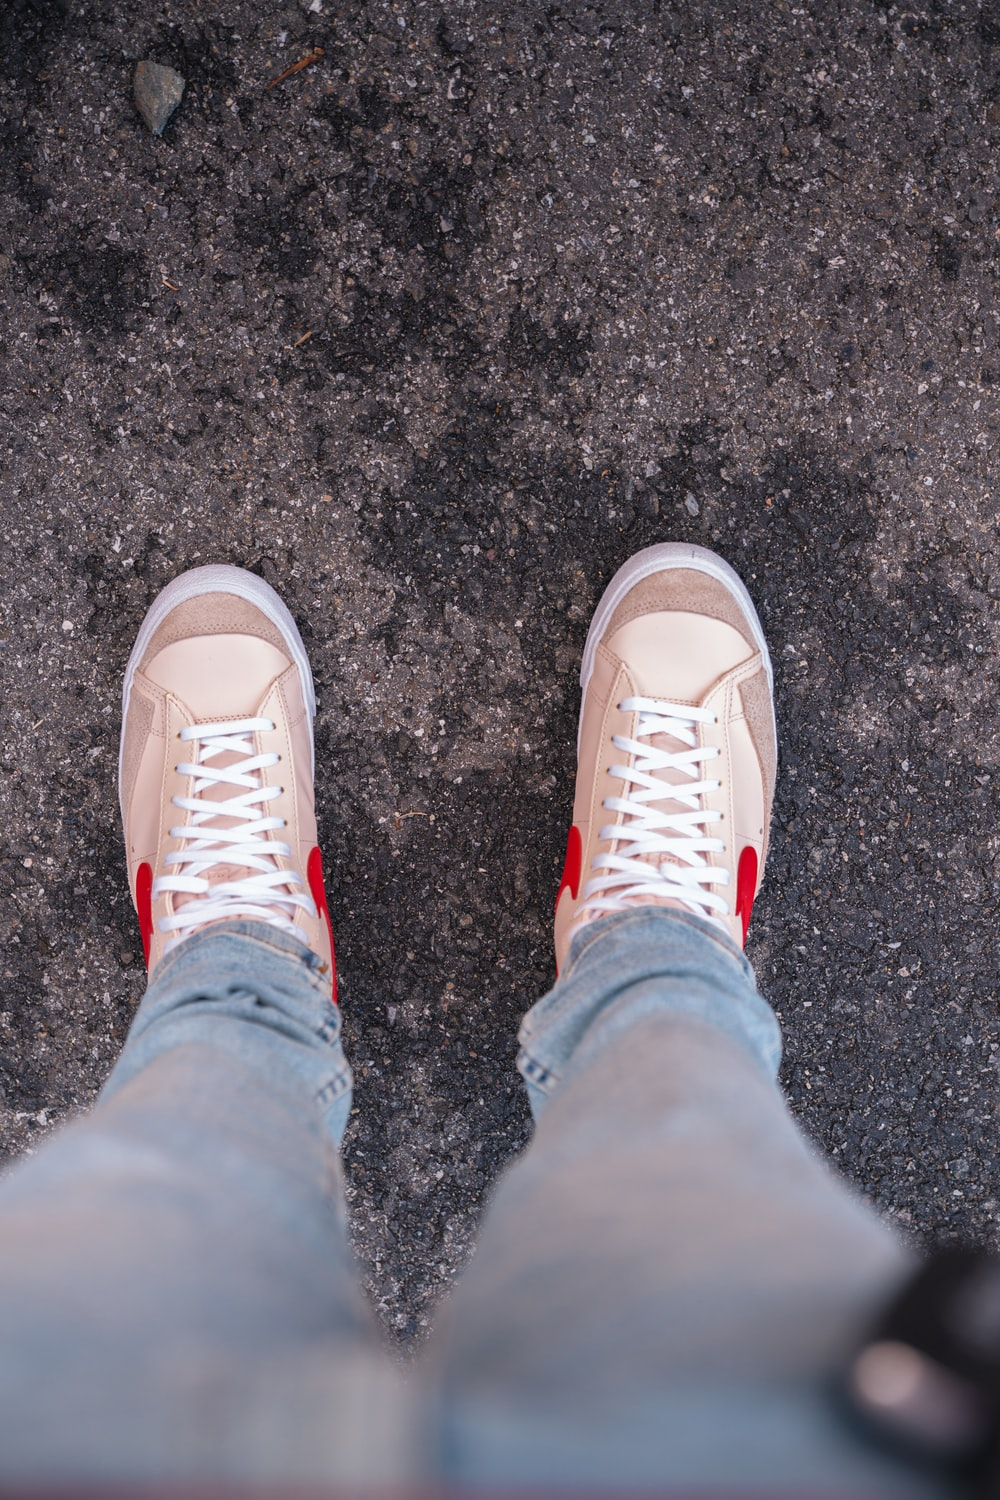 person in blue denim jeans and white sneakers